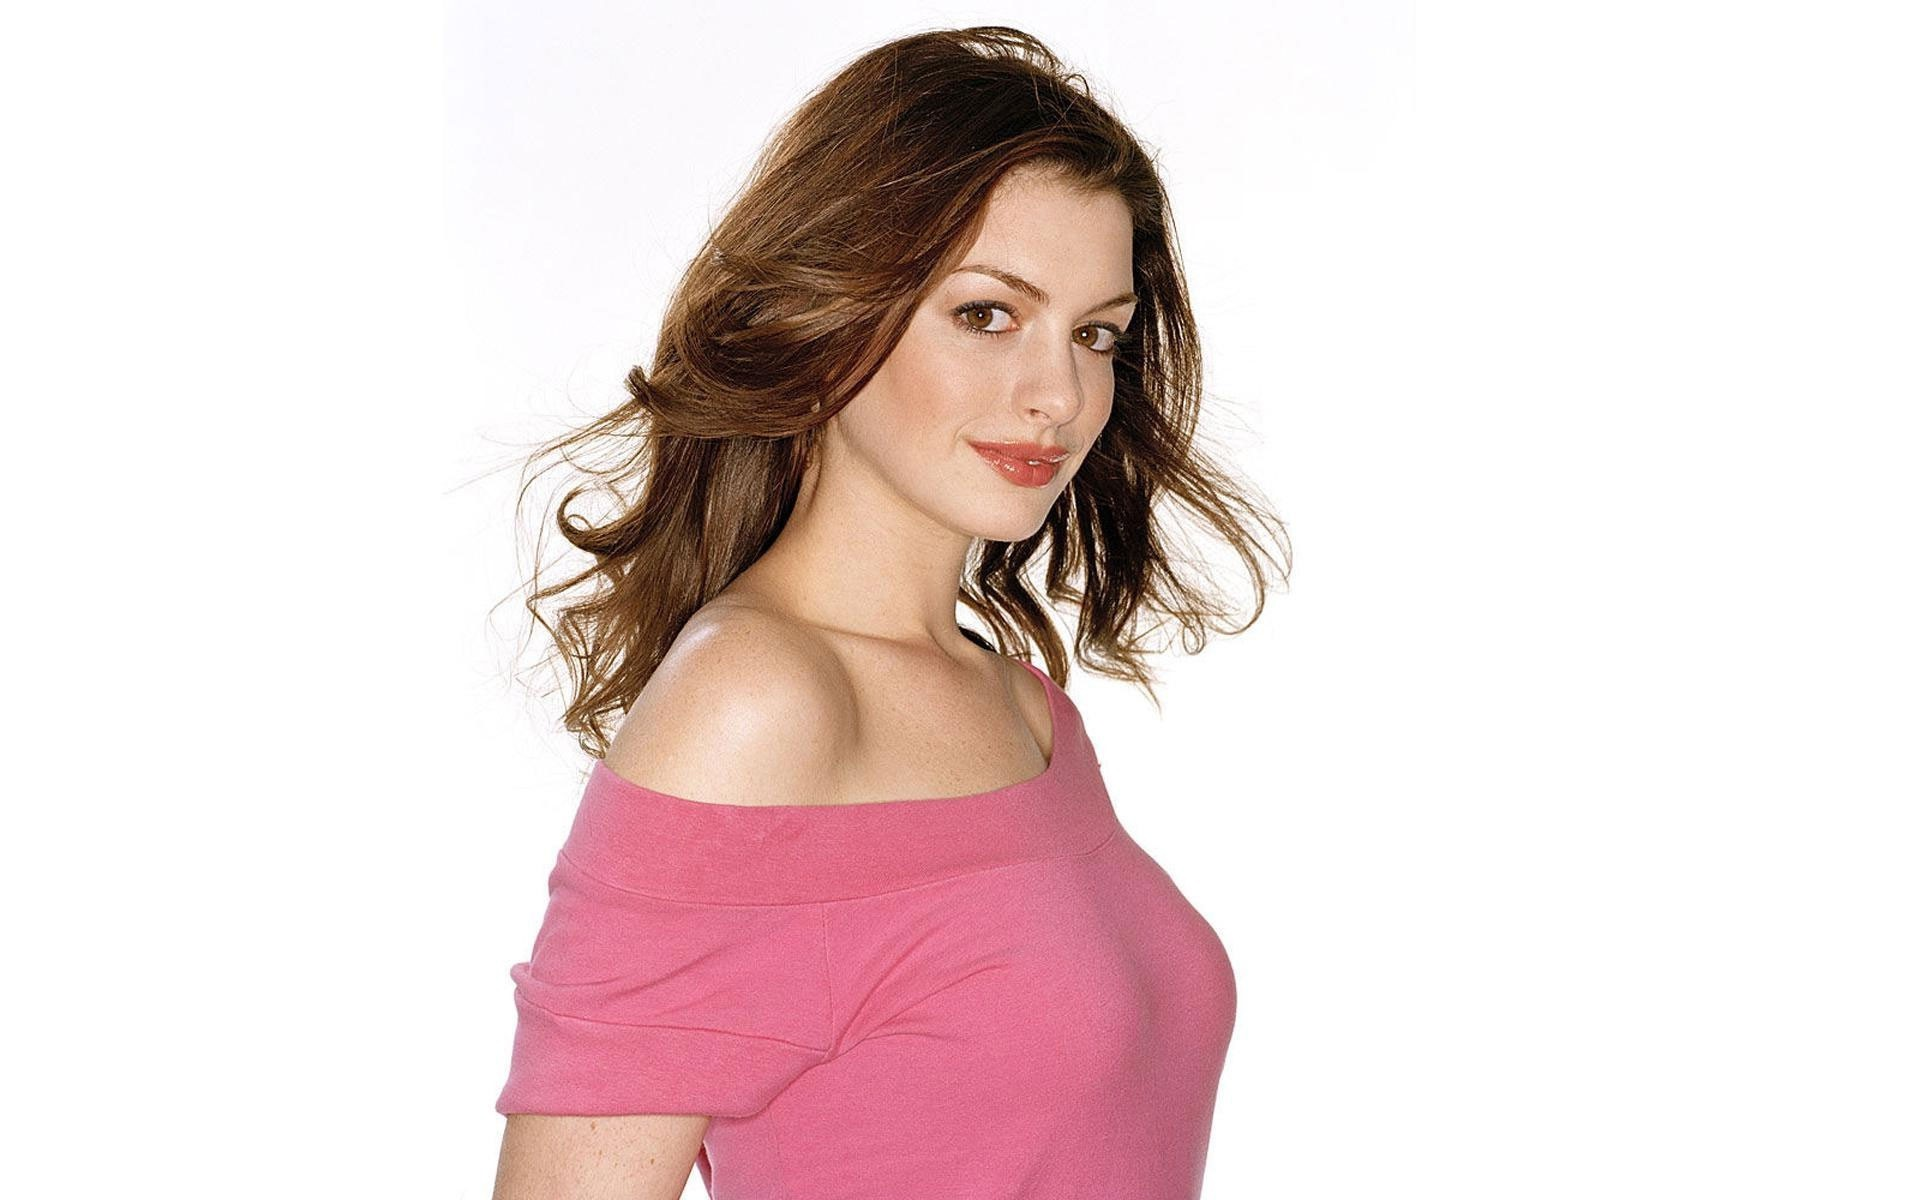 Anne Hathaway Hollywood Actress Celebrity Wallpapers HD Wallpapers 1920x1200